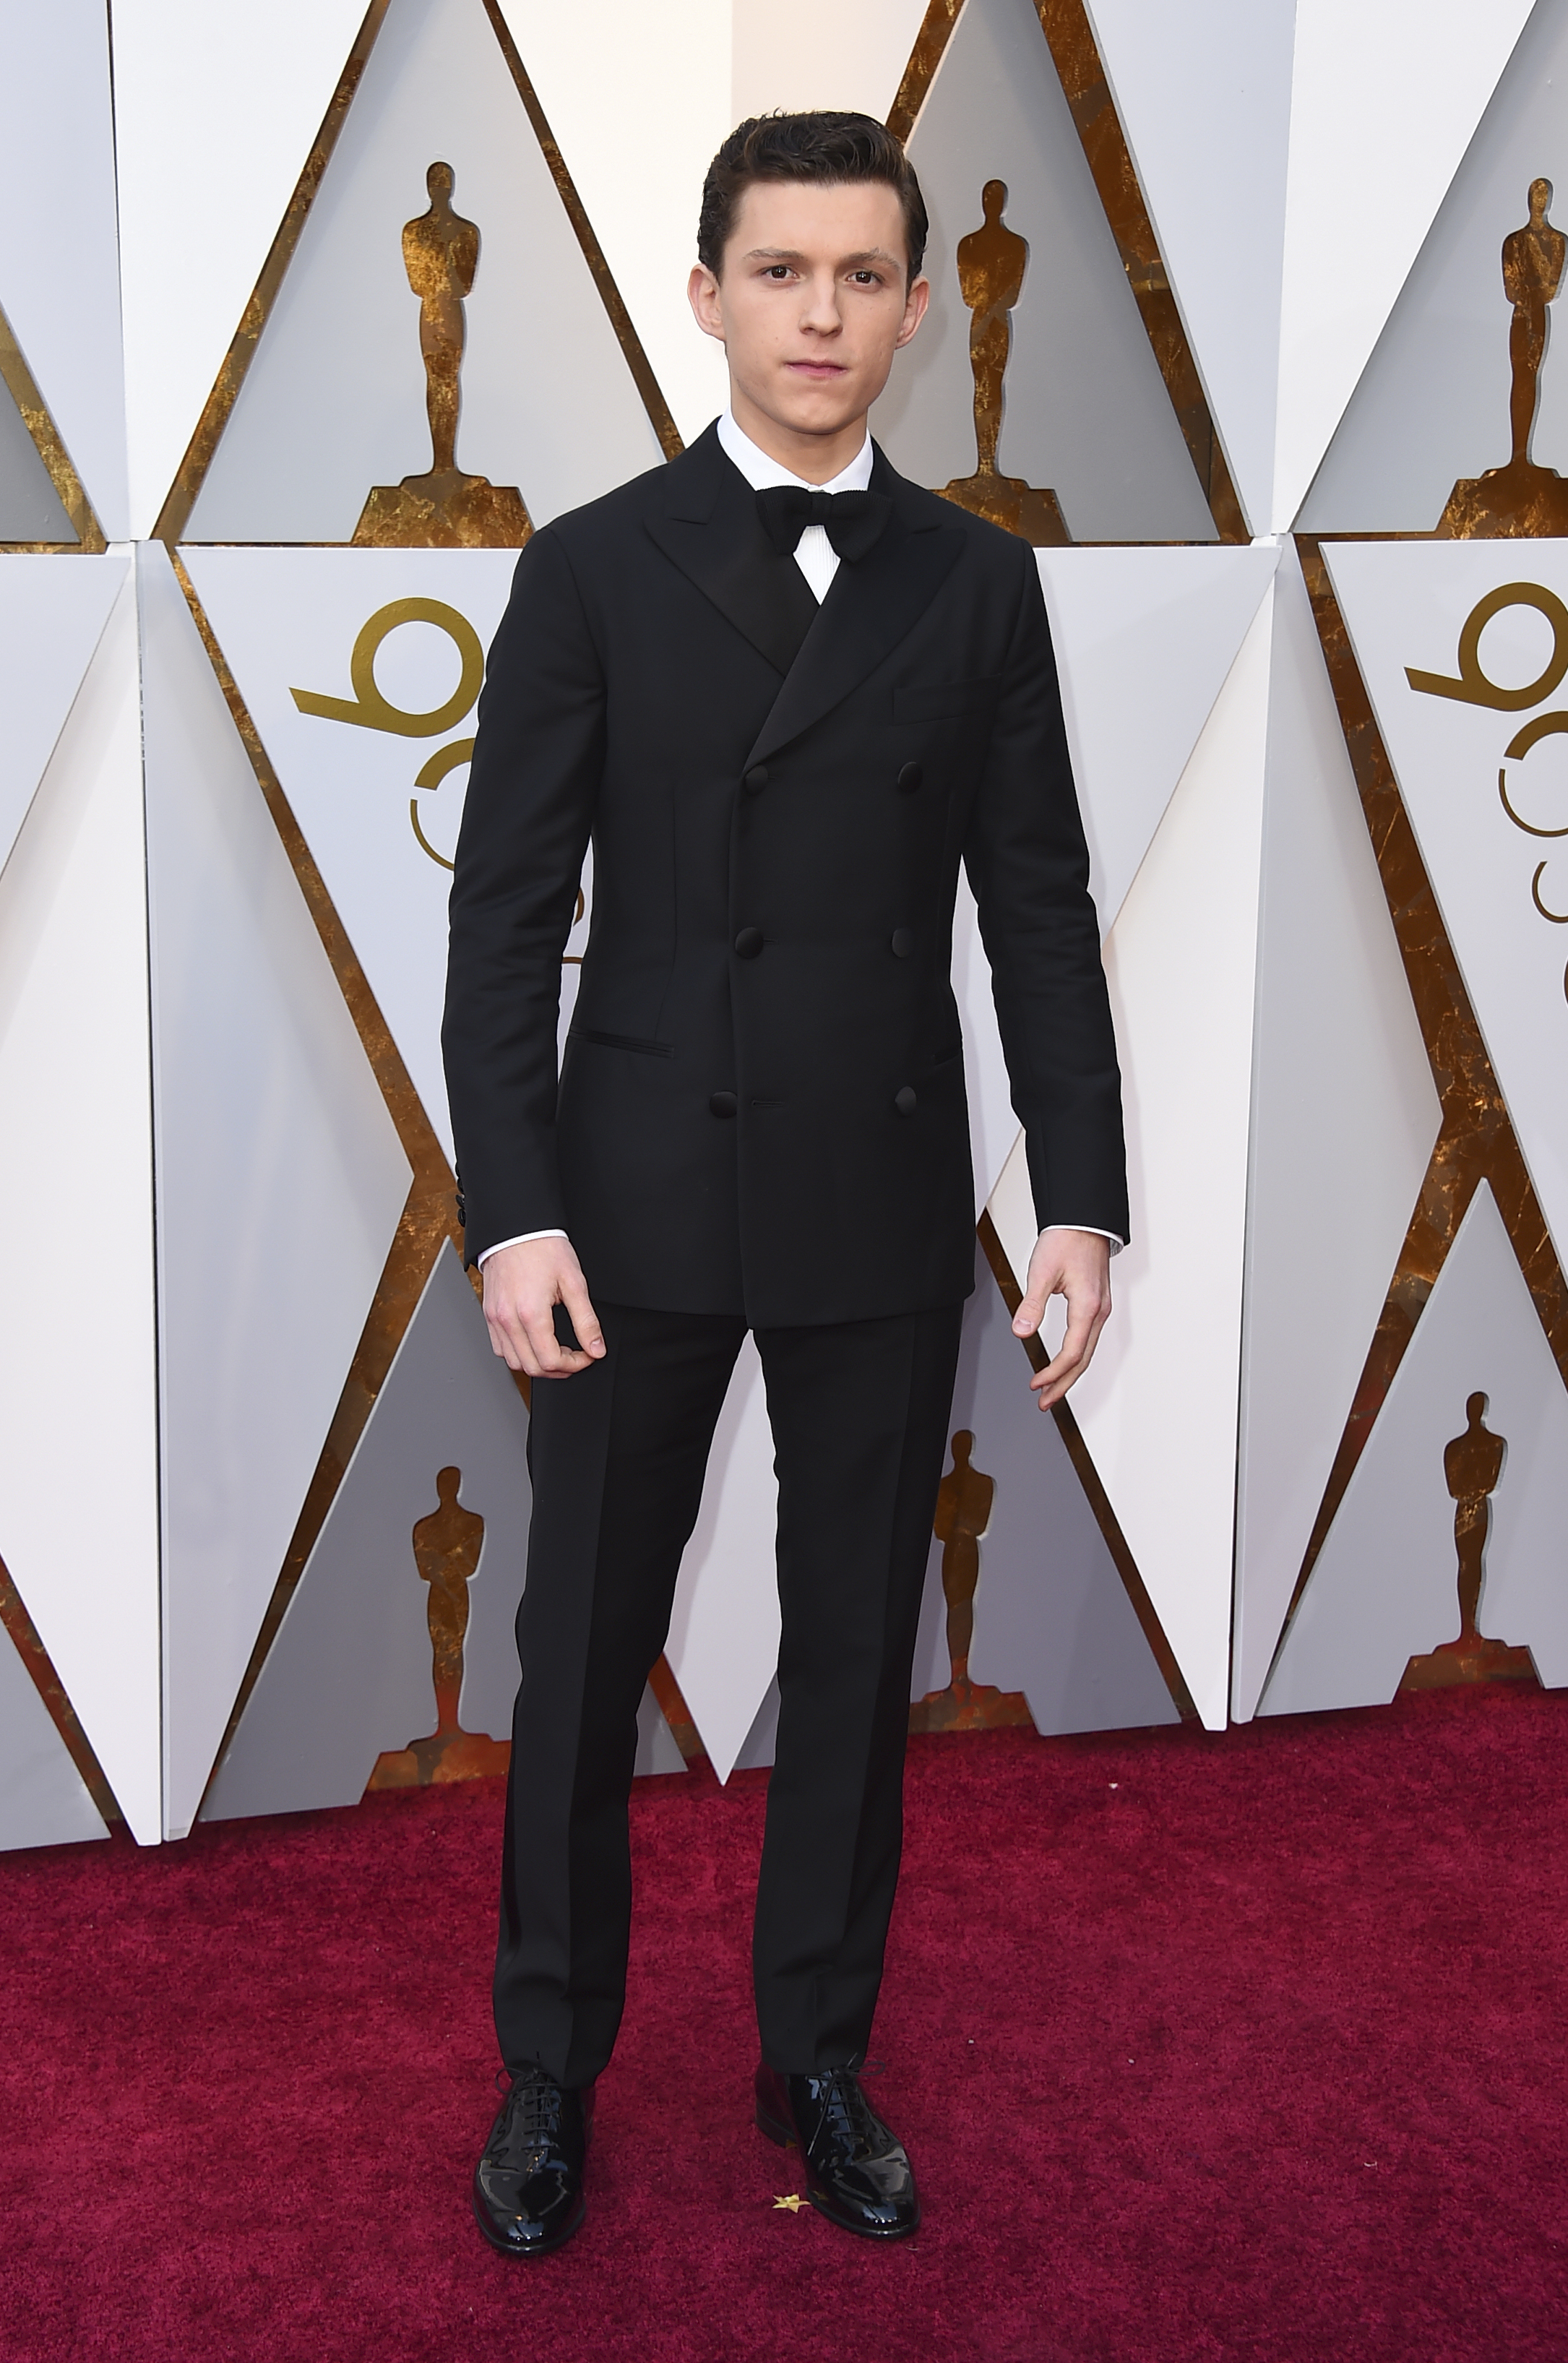 <div class='meta'><div class='origin-logo' data-origin='none'></div><span class='caption-text' data-credit='Jordan Strauss/Invision/AP'>Tom Holland of ''Spider-Man: Homecoming'' arrives at the Oscars on Sunday, March 4, 2018, at the Dolby Theatre in Los Angeles.</span></div>